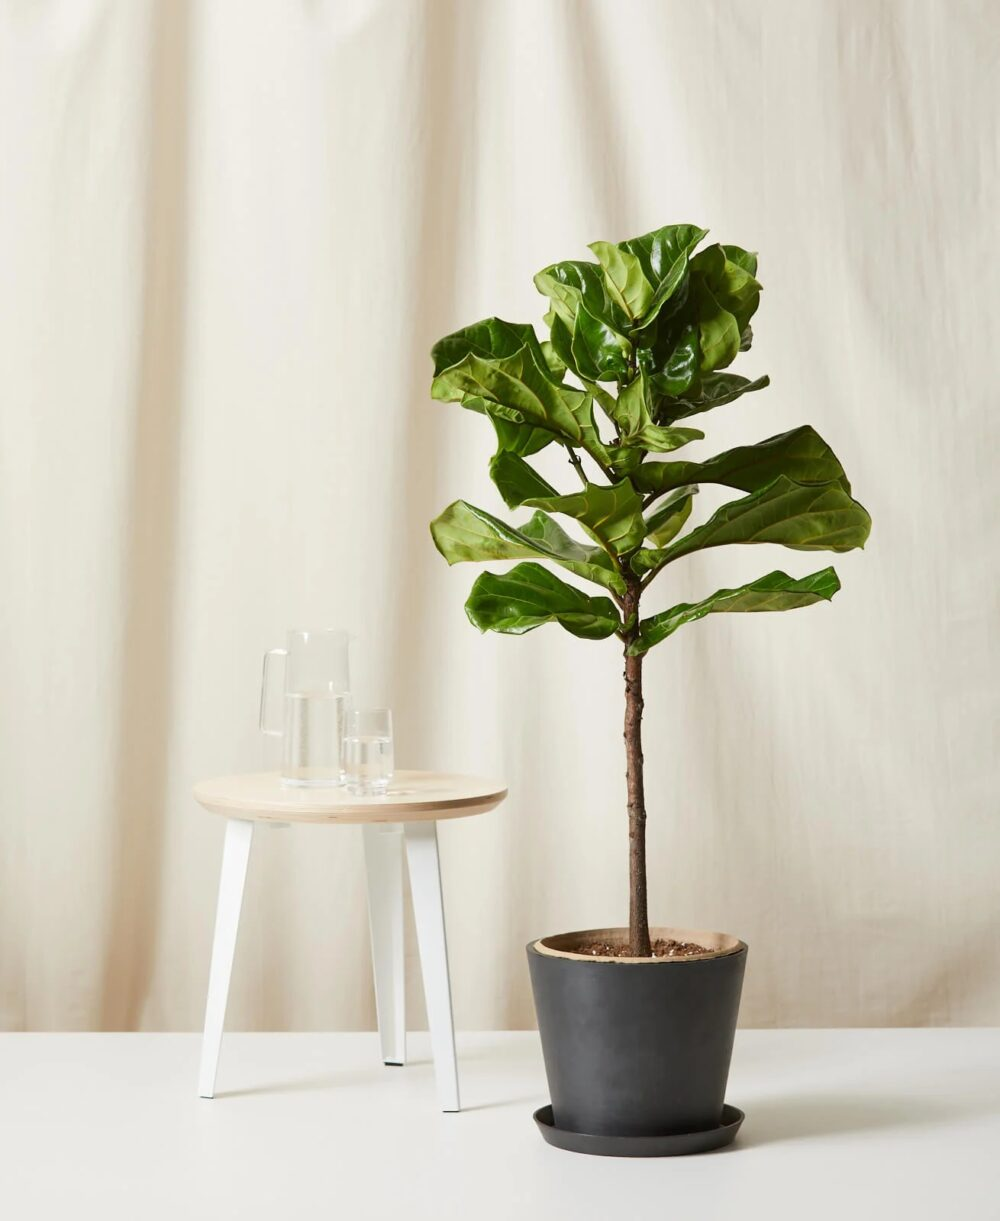 6 Best Faux Fiddle Leaf Fig Trees - If you are searching for the best faux fiddle leaf fig tree you can find - then your search is over my friend! :)